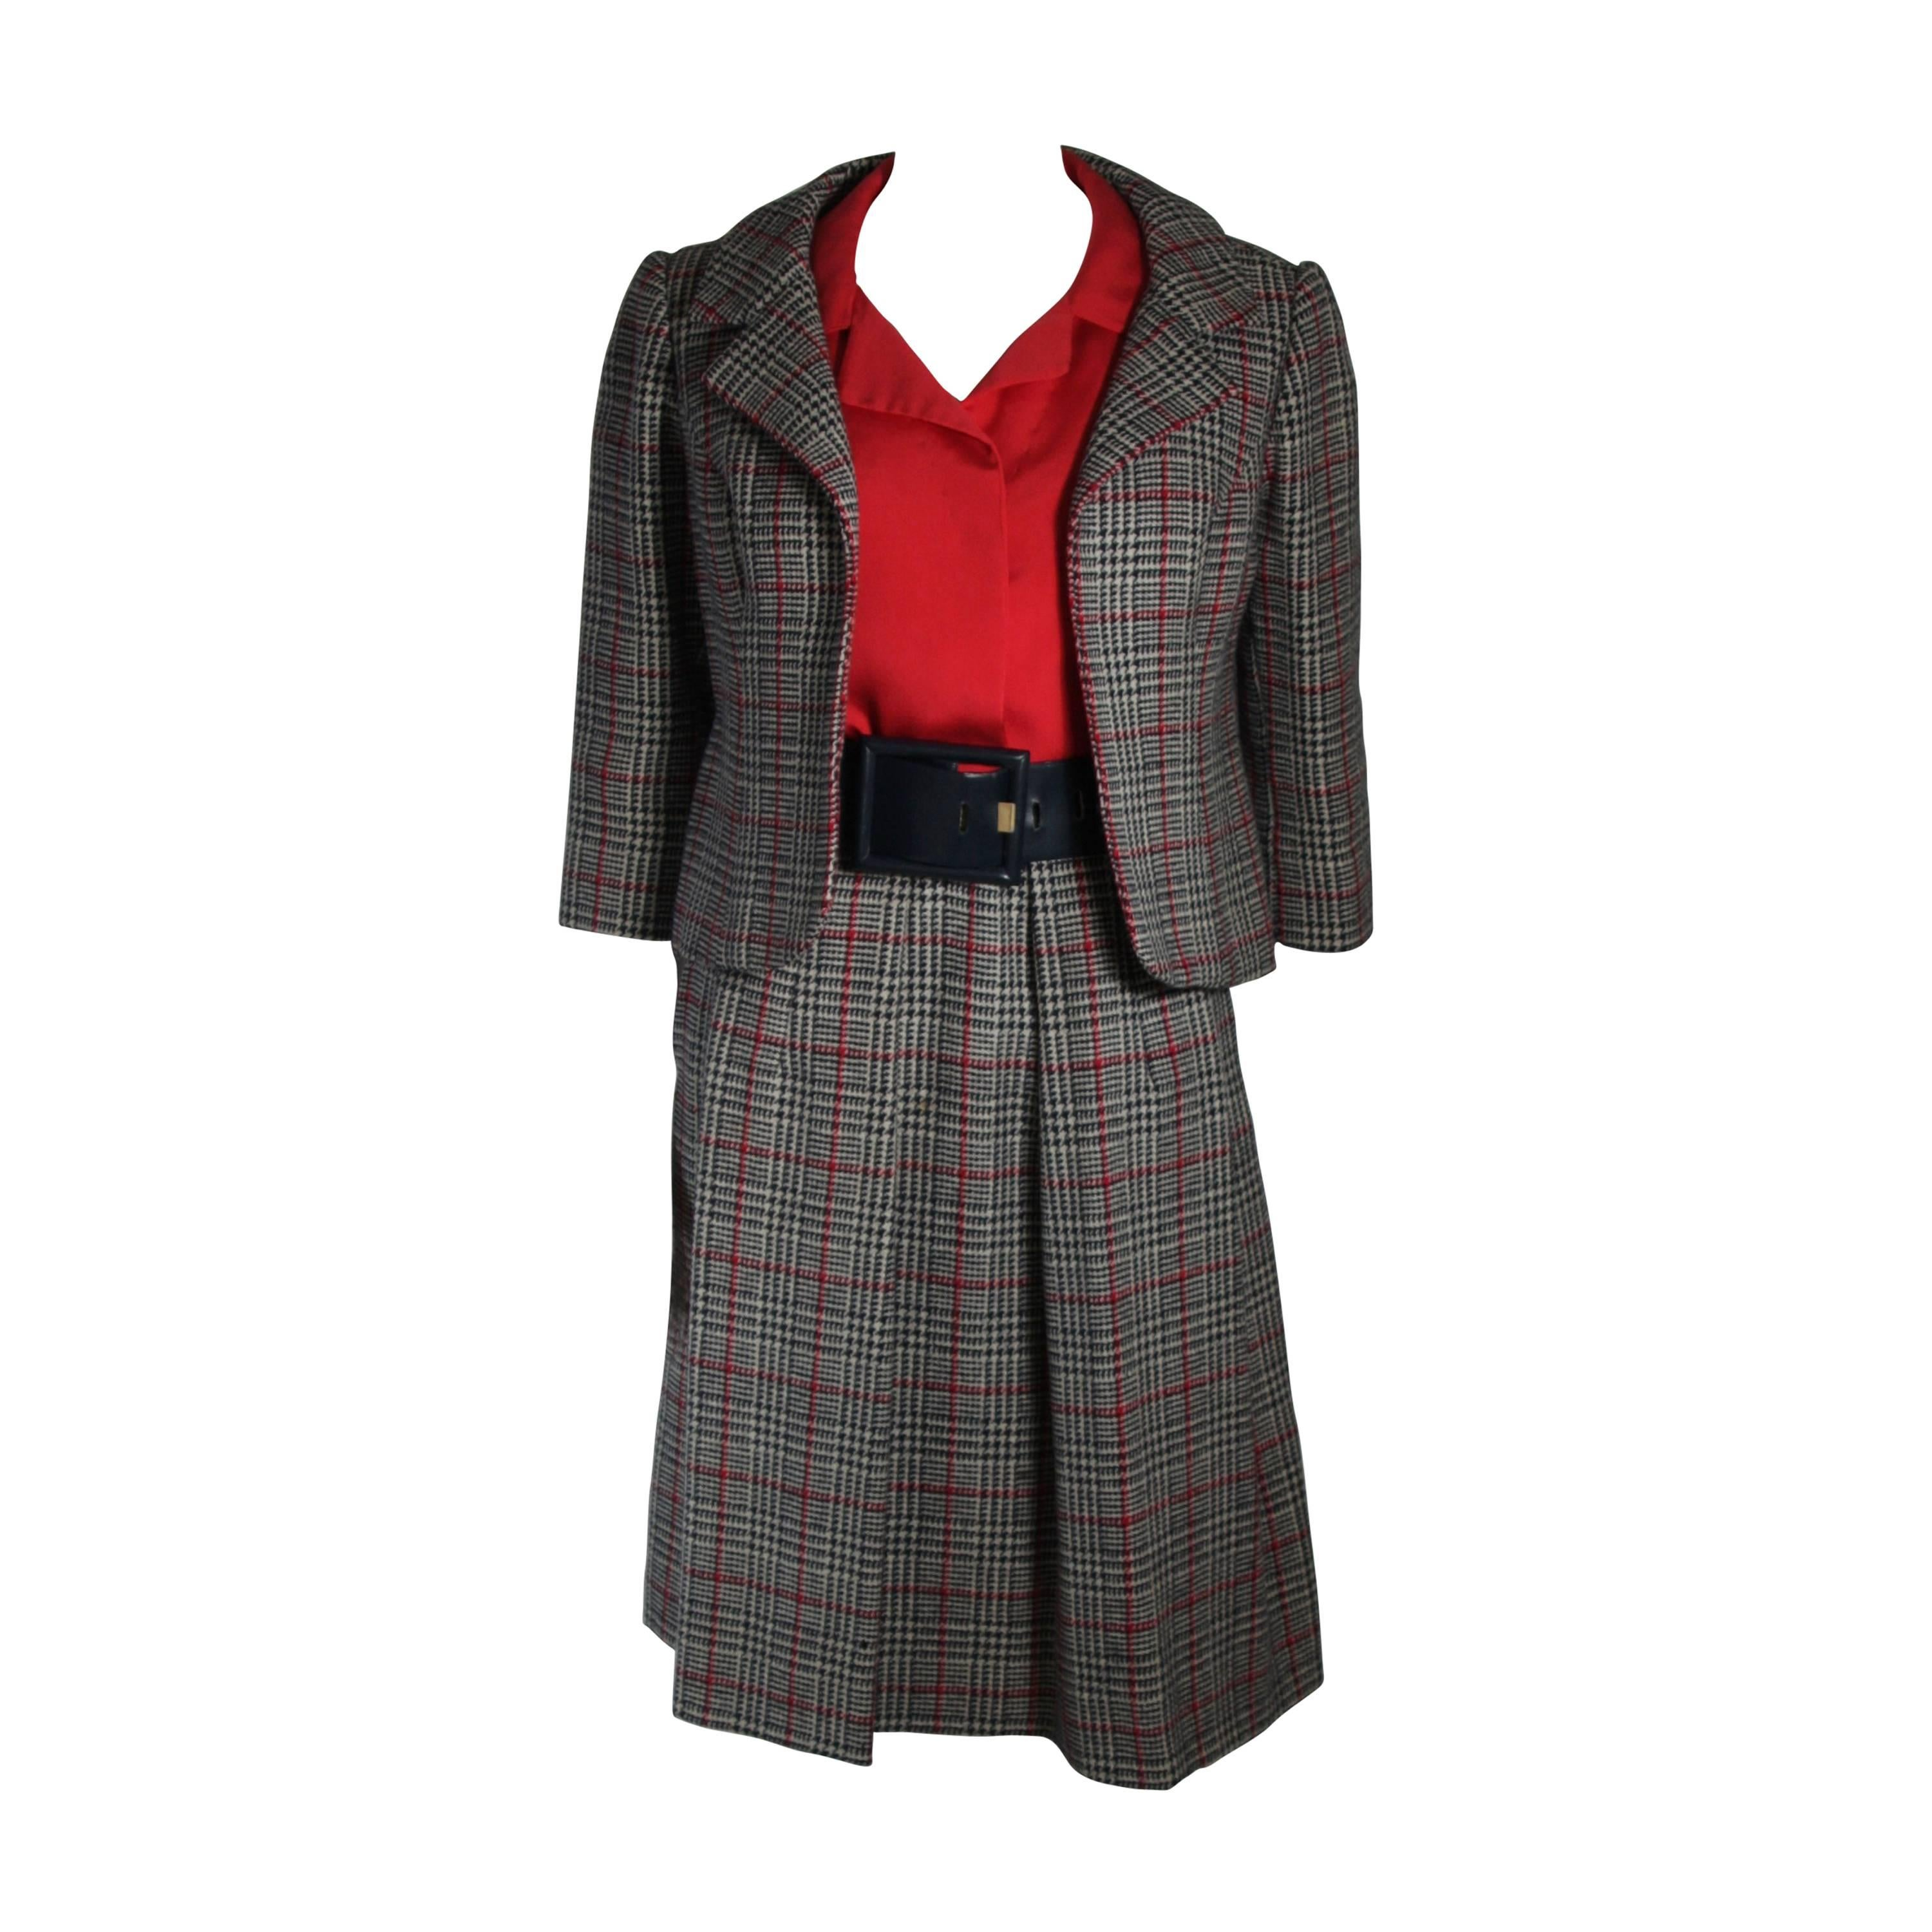 Galanos Black White and Red Wool Plaid Skirt Suit 4 Piece Size Small Medium